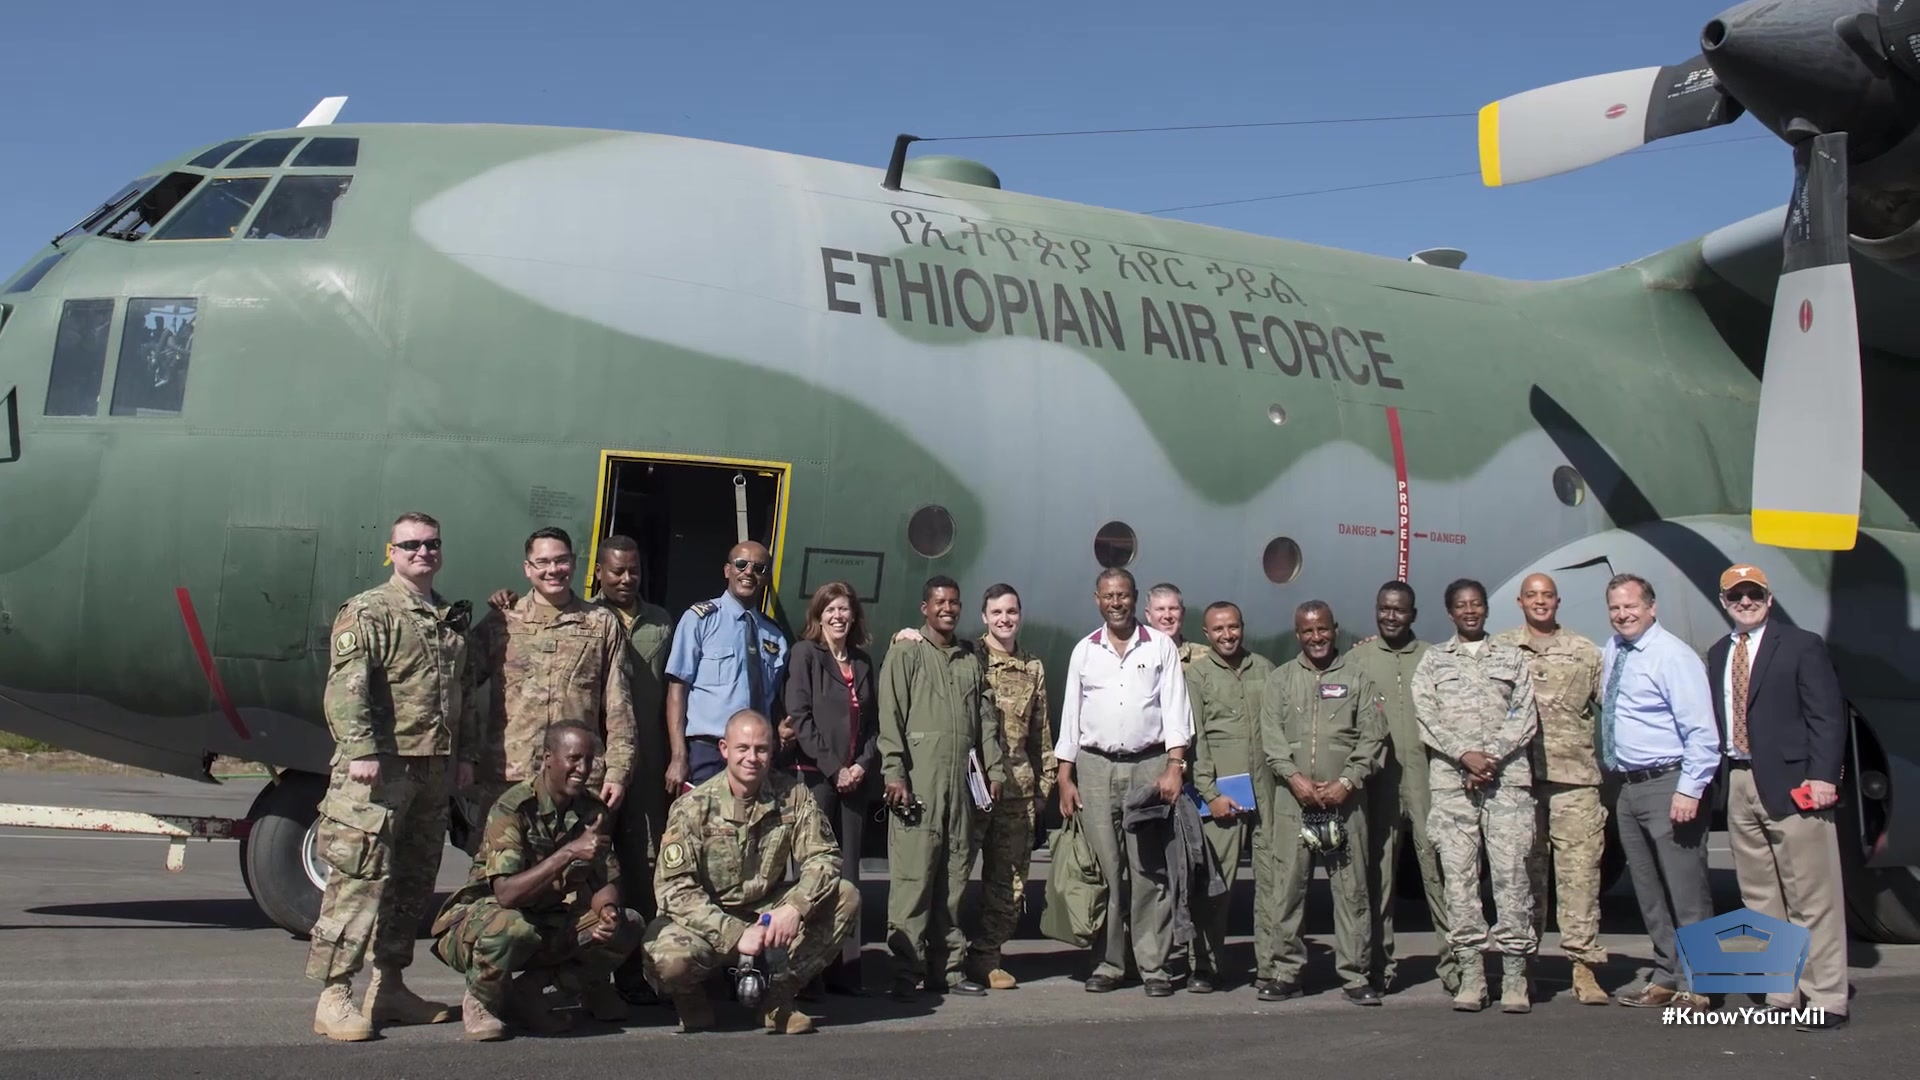 The U.S. Air Force and the Ethiopian air force work hand in hand to maintain aircraft for ongoing peacekeeping operations. Through teamwork and shared experiences, the forces build friendship and carry out the mission.